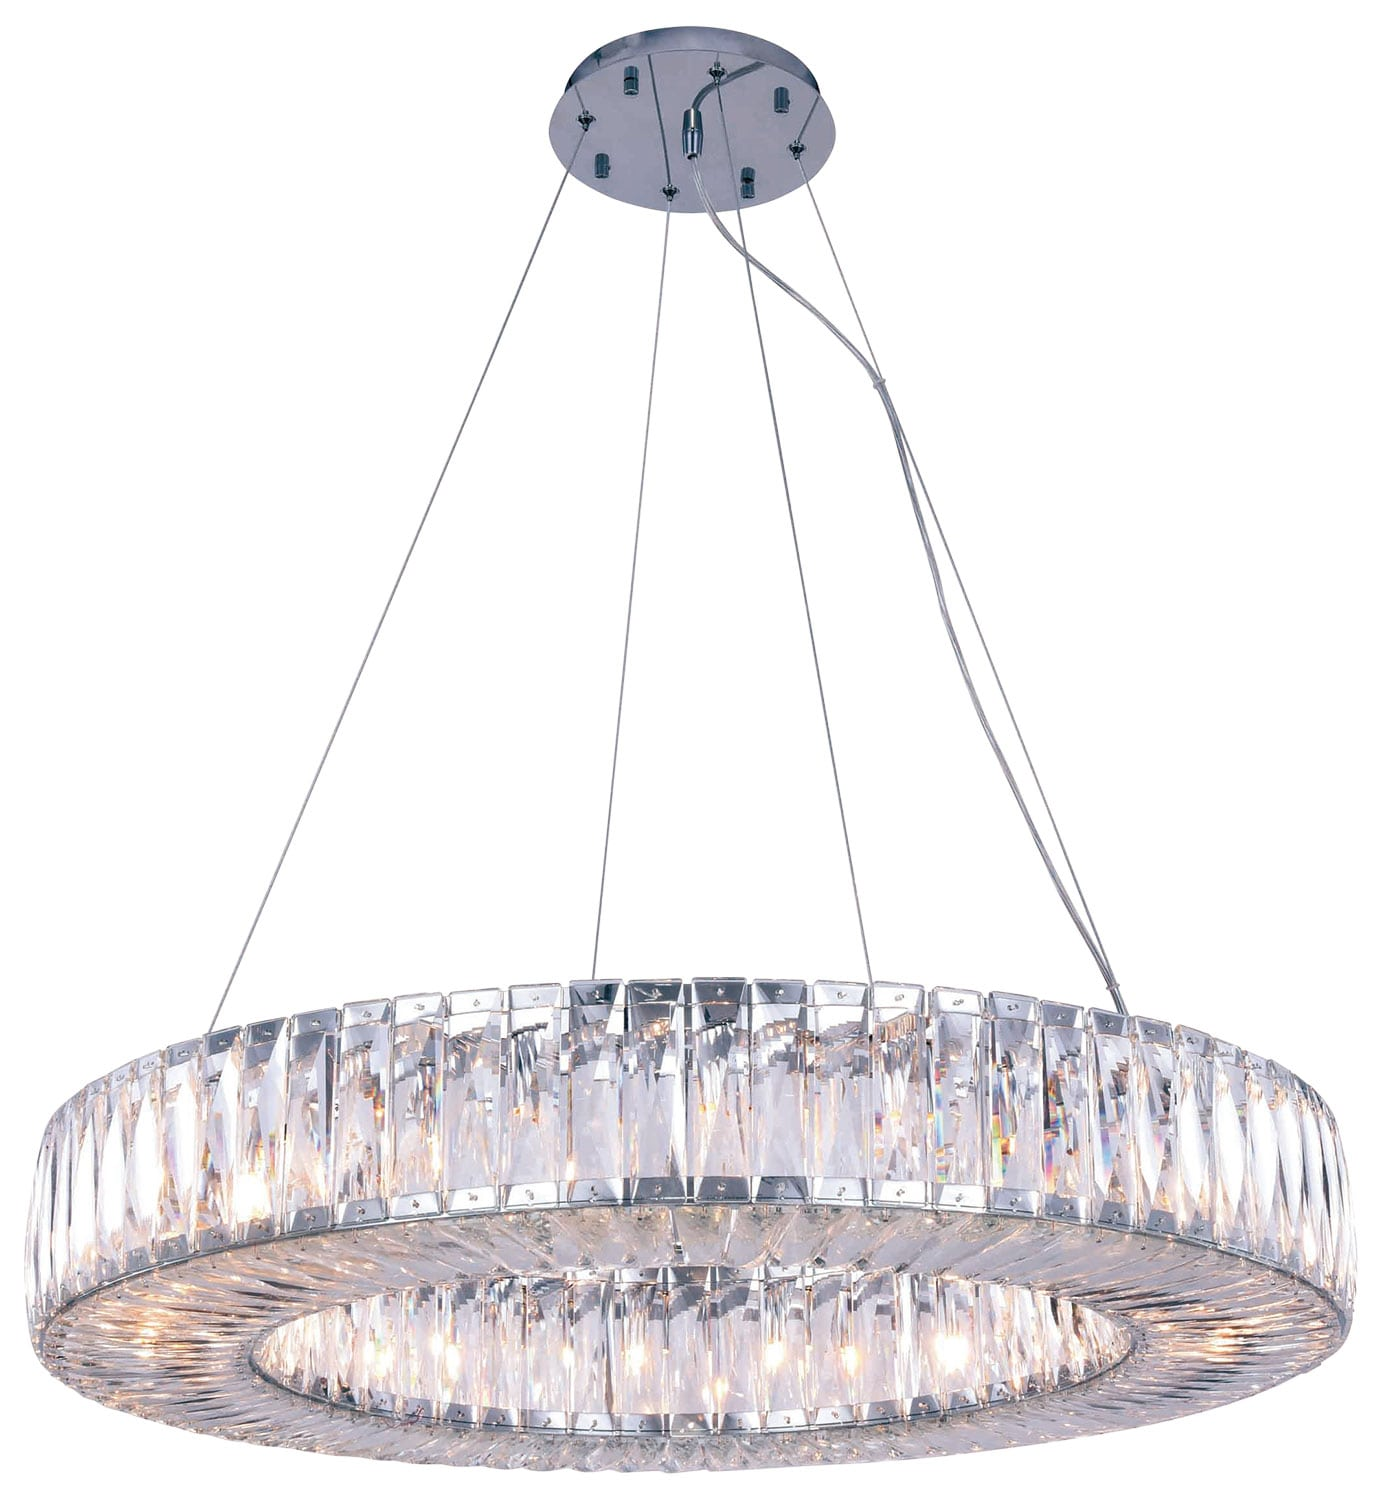 Home Accessories - Cuvette Chandelier